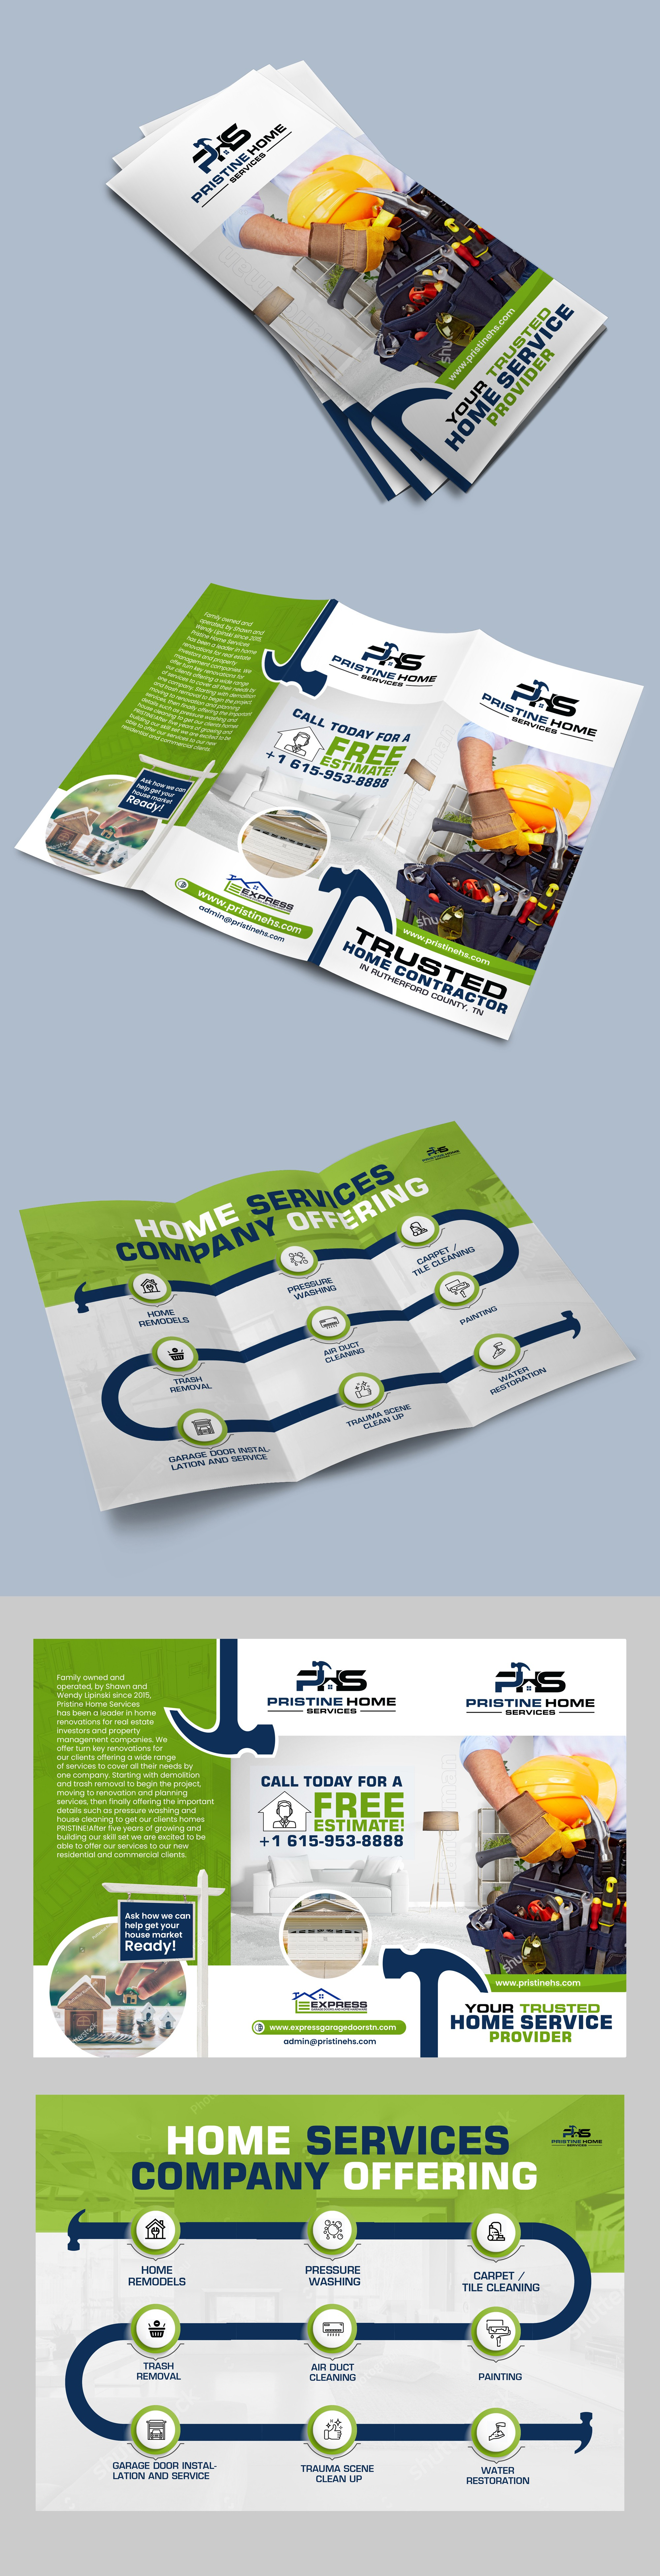 Brochure for Home Services Company